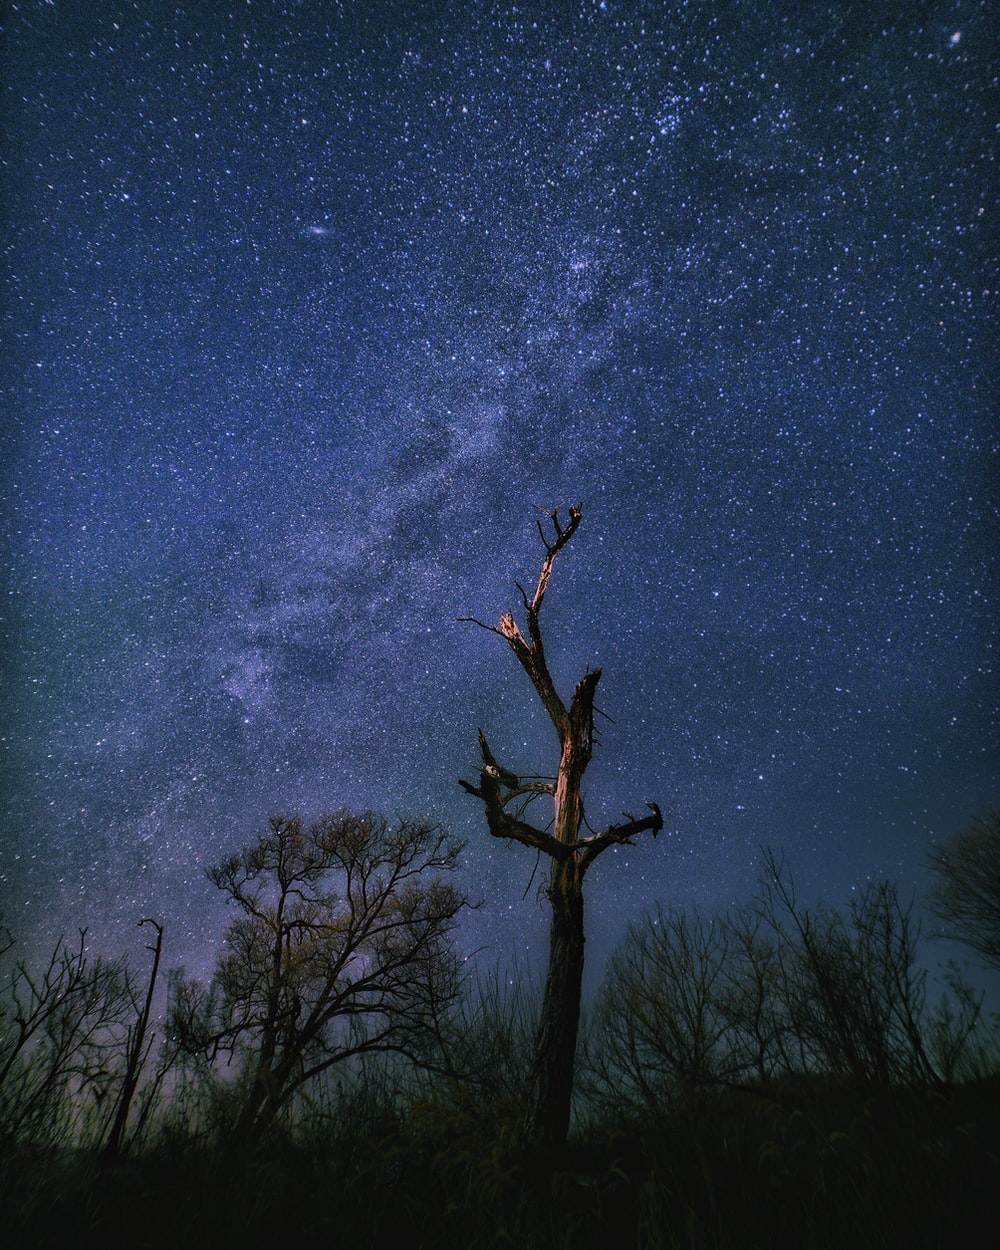 silhouette of trees trees under starry sky